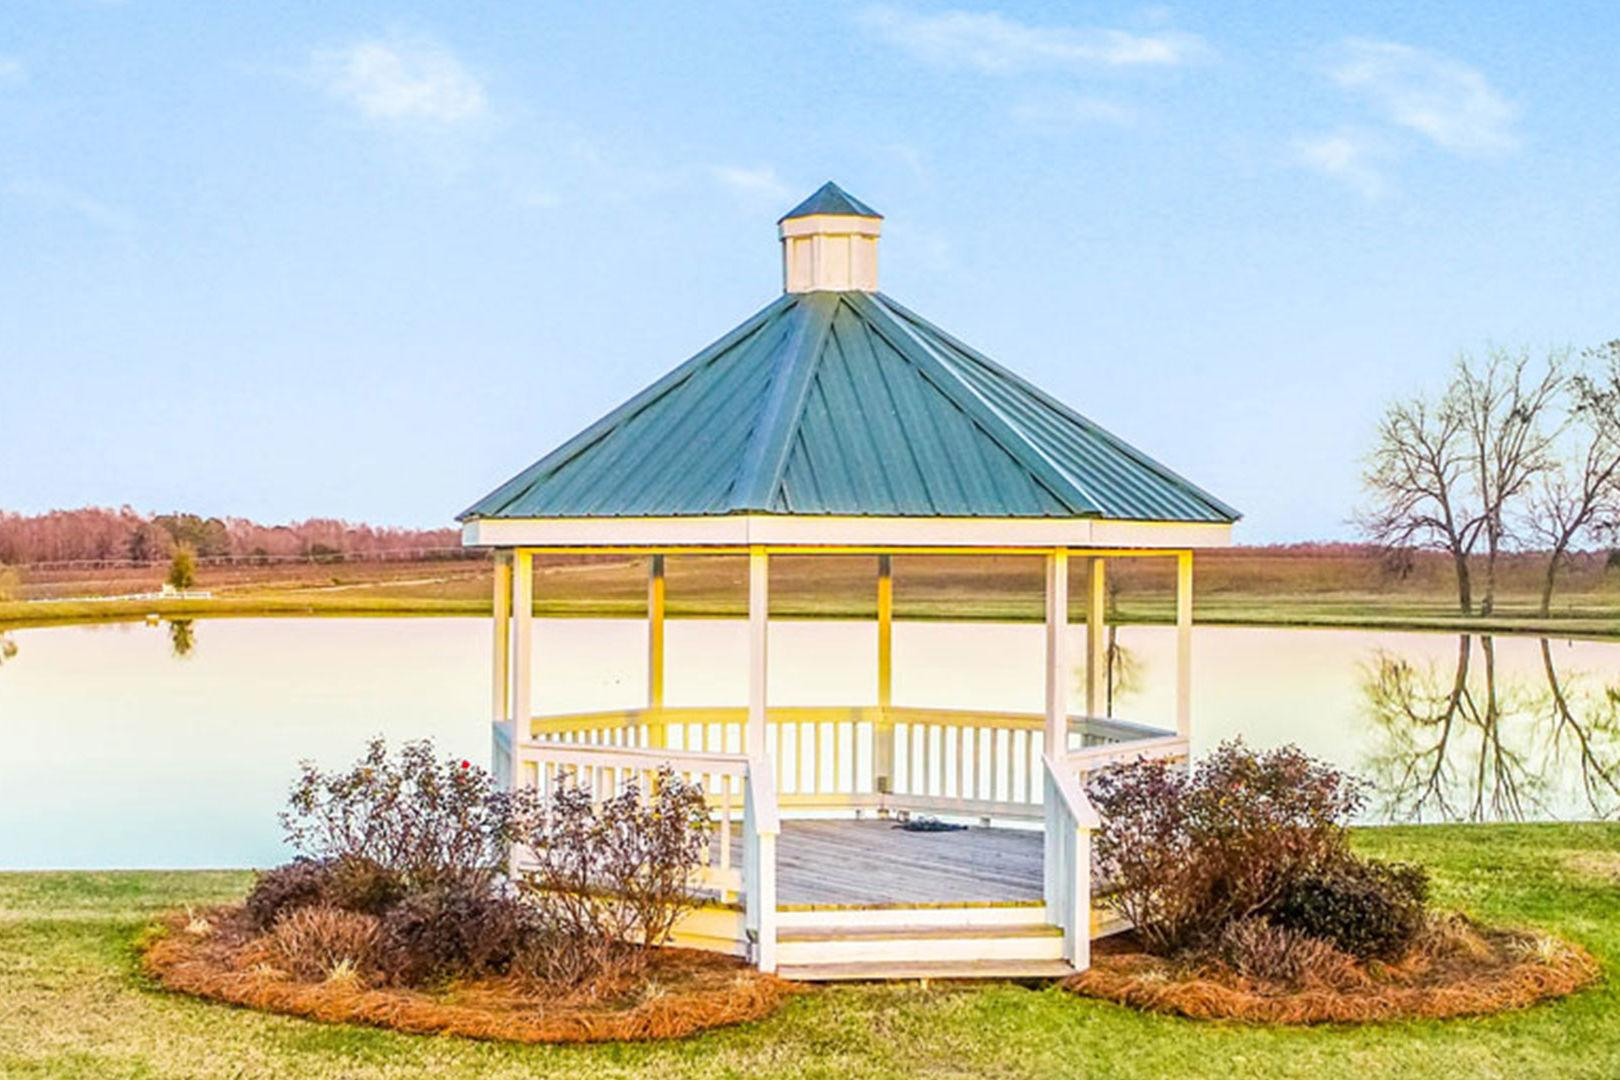 This Popular Barn Wedding Venue is Headed to Auction in ...